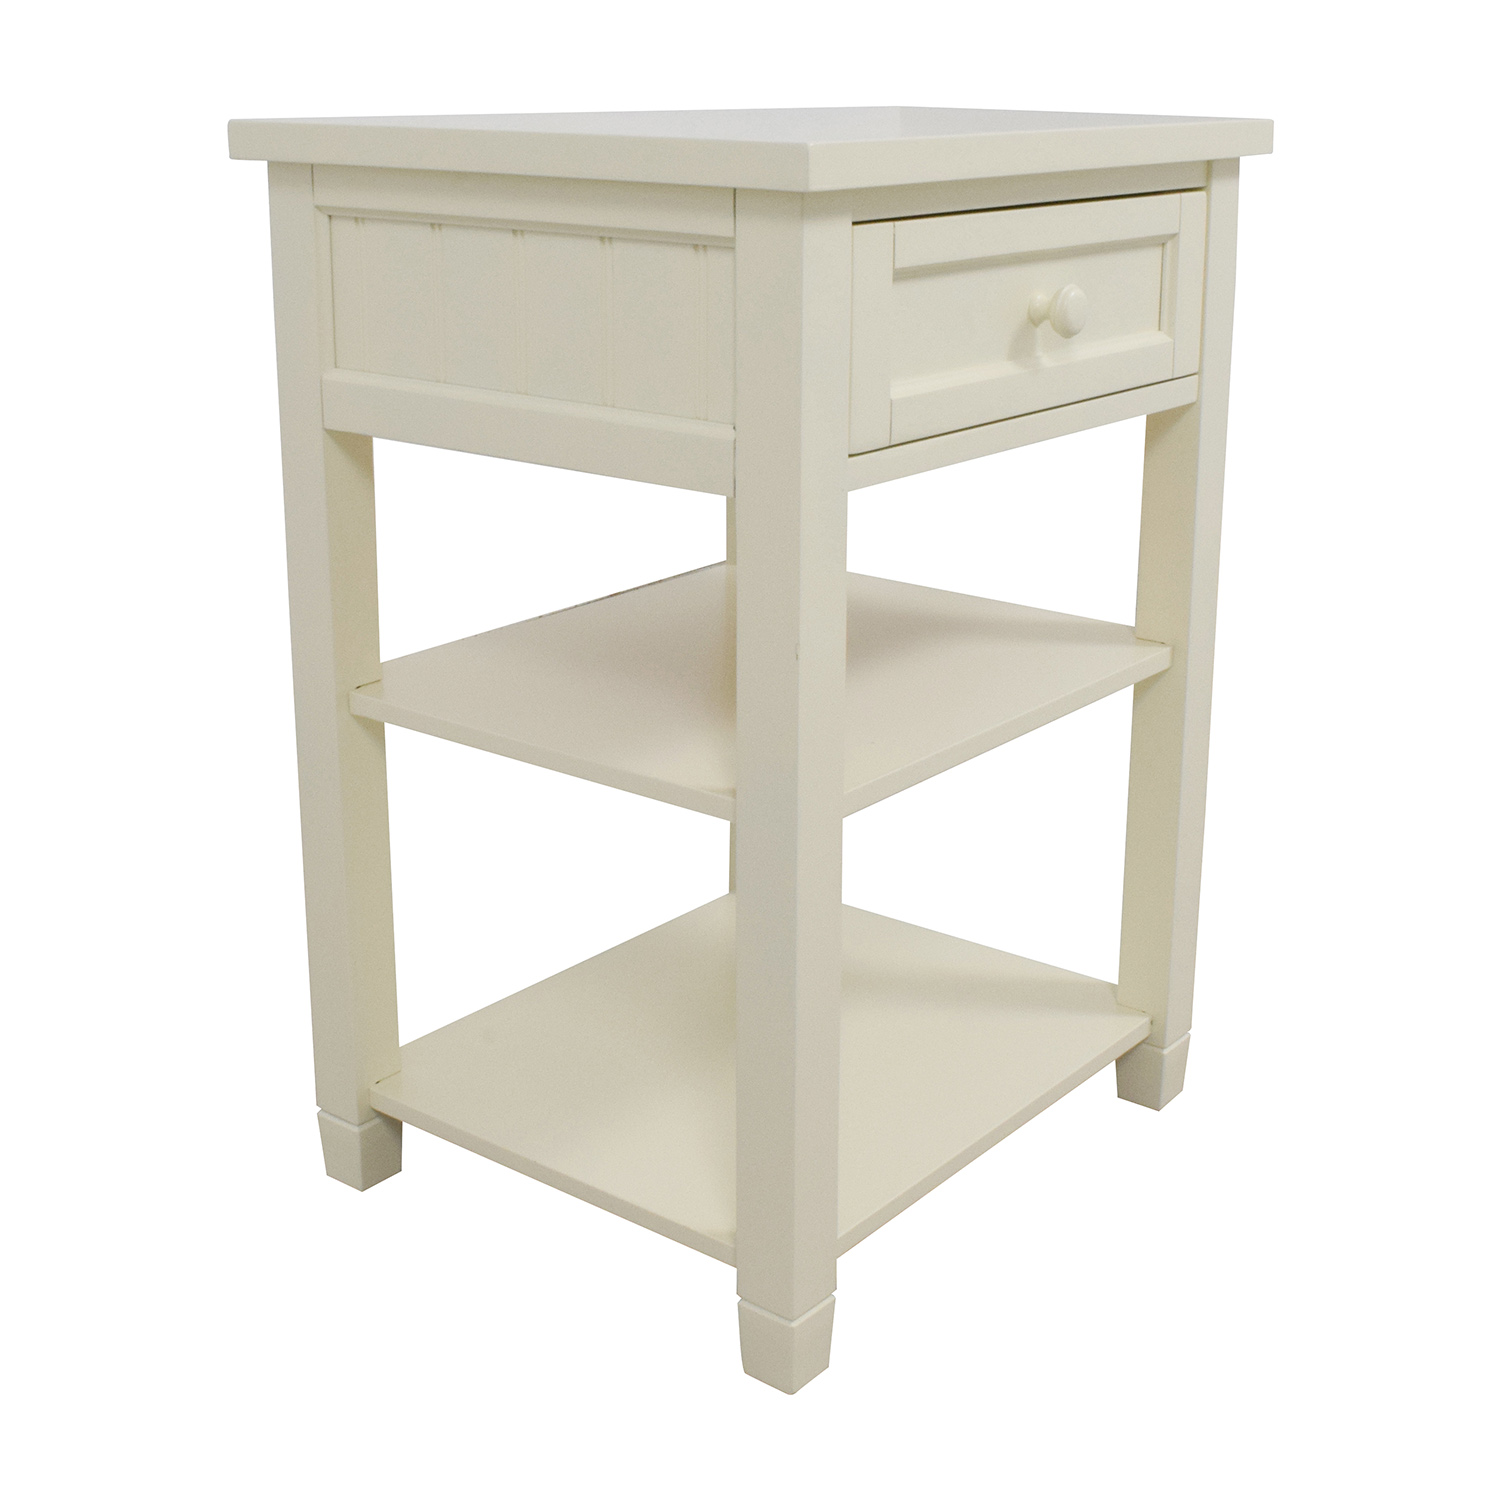 88% OFF Pottery Barn Pottery Barn Beadboard Bedside Table Tables